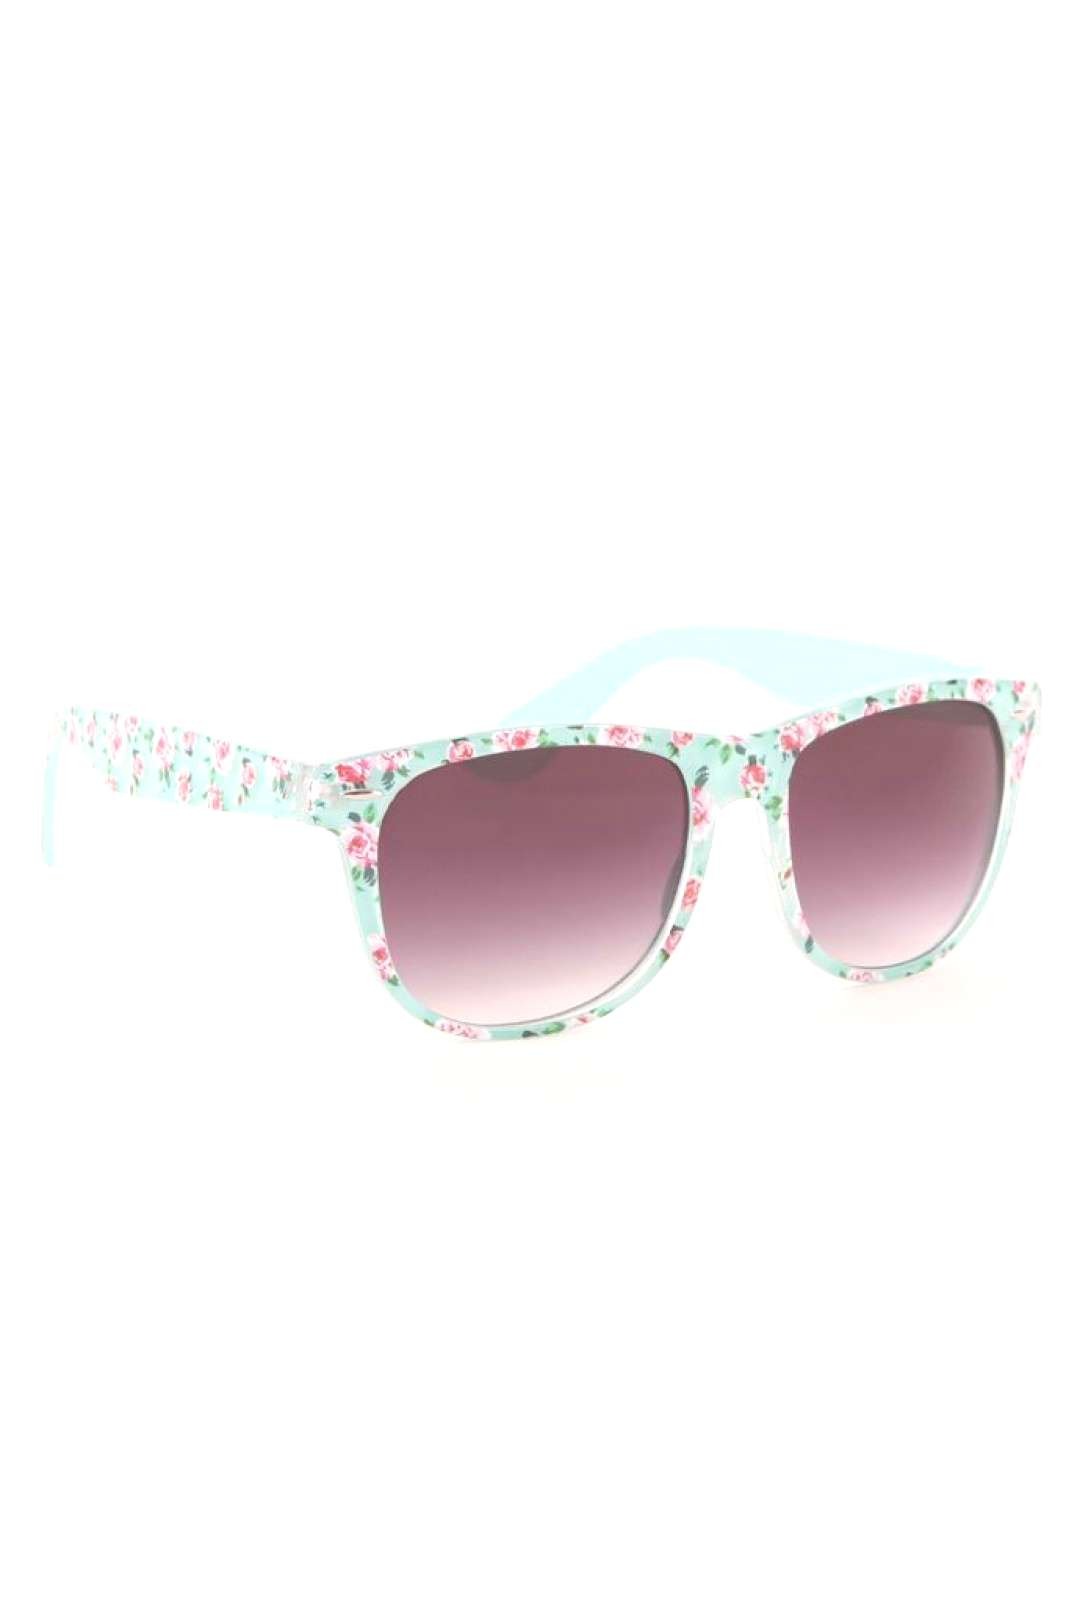 Ray Ban 80% OFF!gtgt With Love From CA Mint Floral Sunglasses